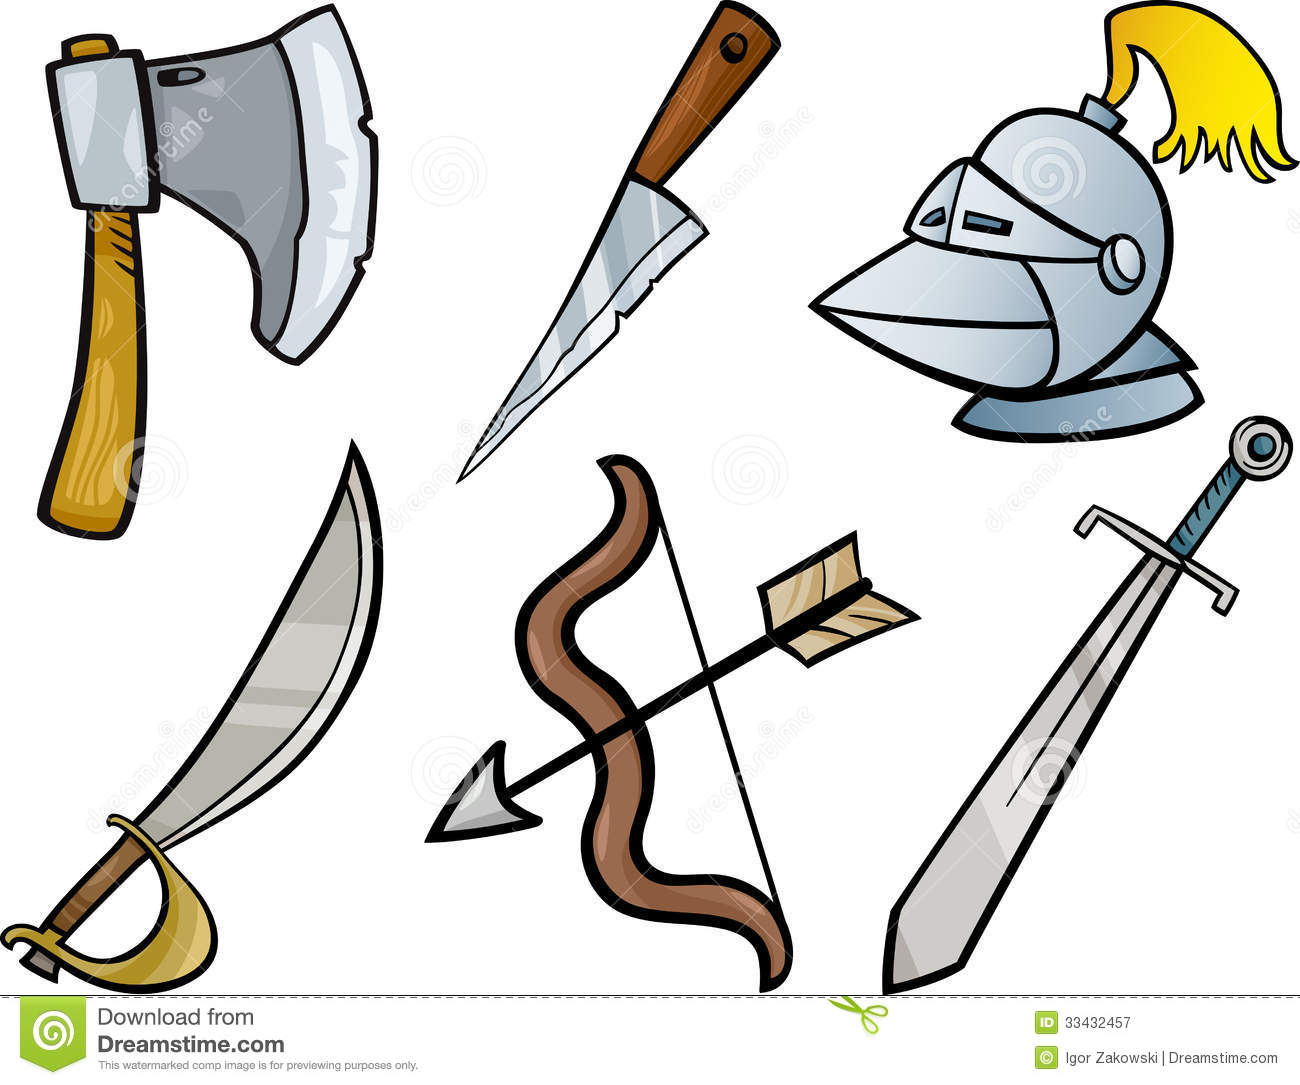 war weapons clipart - photo #9